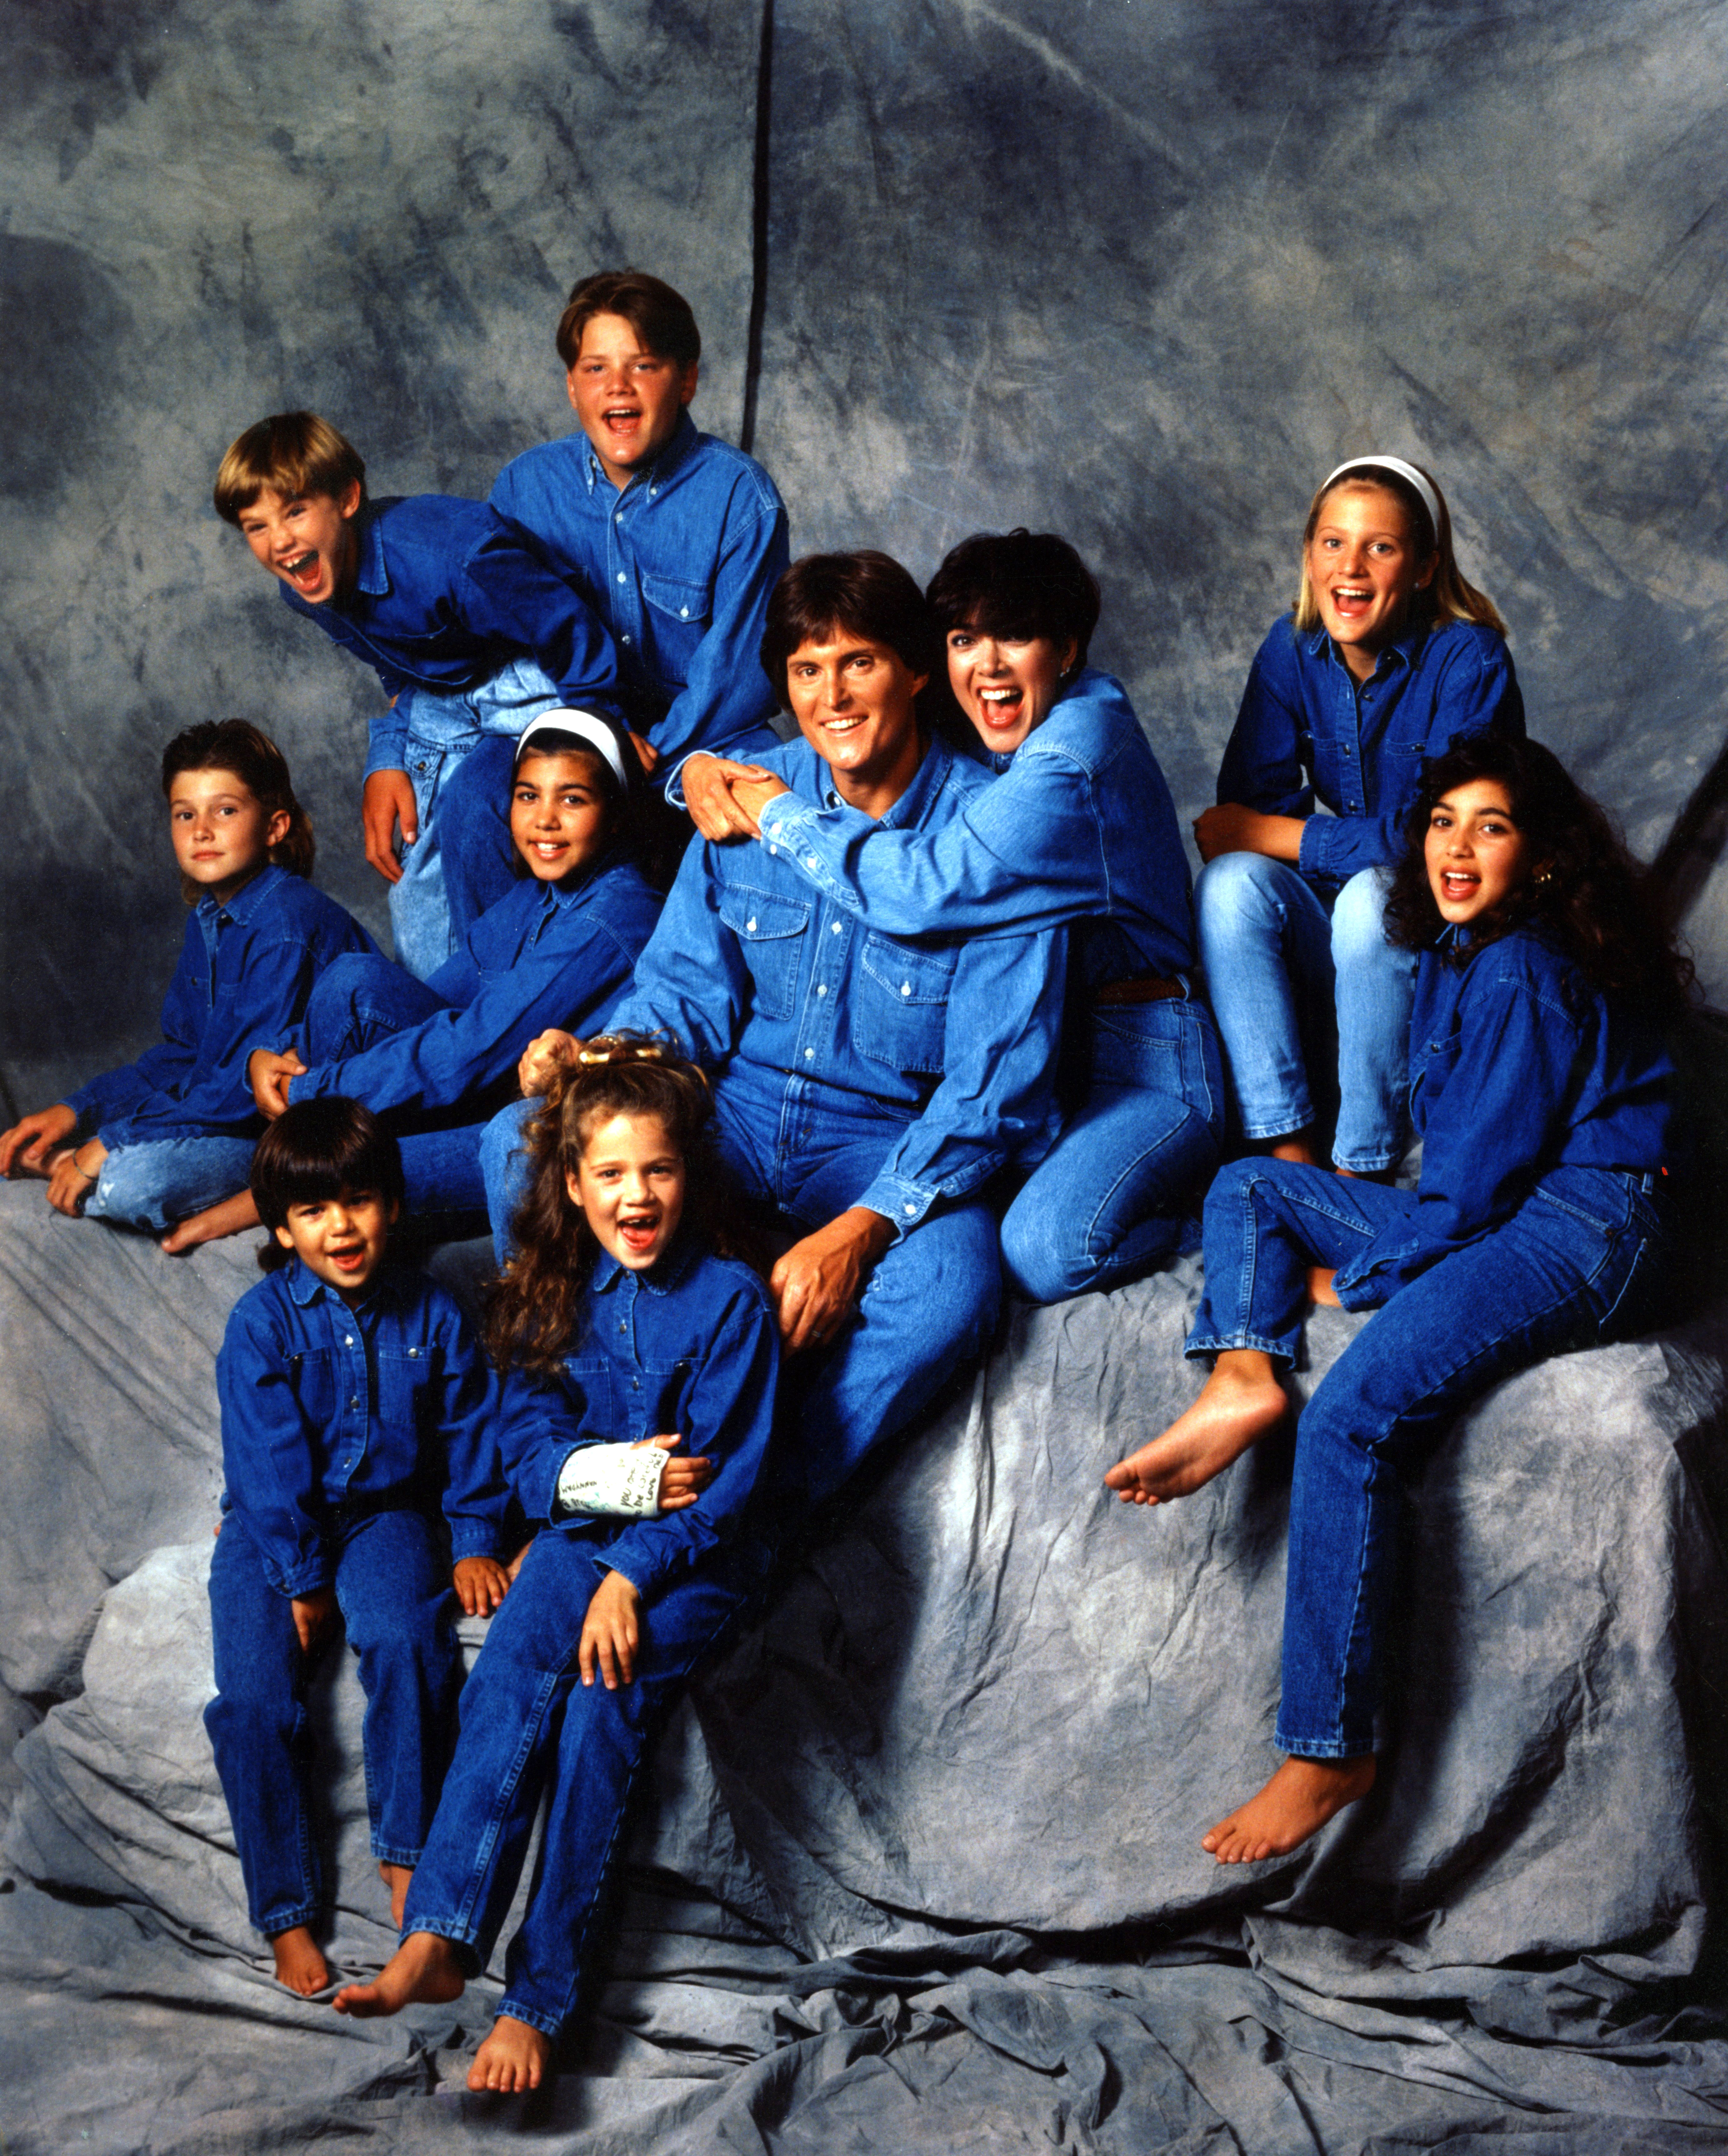 Kourtney Kardashian Through the Years - The Kardashian-Jenners love a family portrait! Kourtney posed in all-denim with Kim, Khloé and Rob and step-siblings Brody, Cassandra, Brandon and Burt Jenner in 1991.